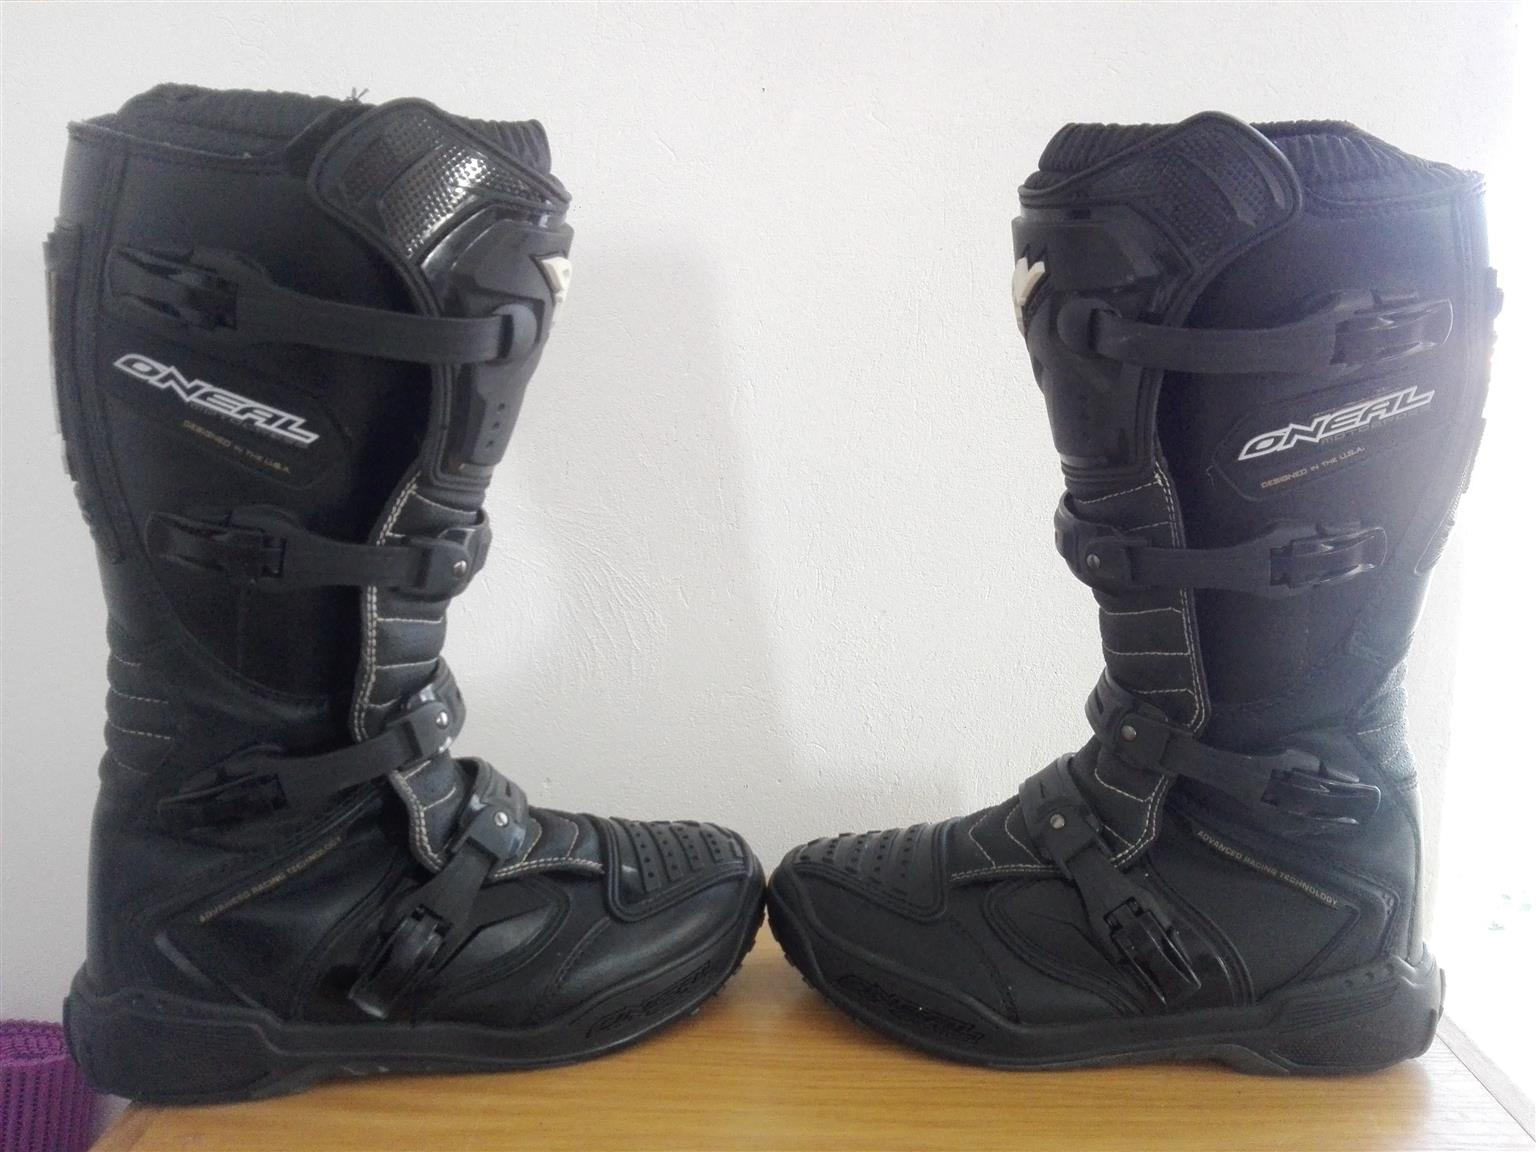 ONEAL ELEMENT III CROSS BOOTS (AS NEW) FOR SALE